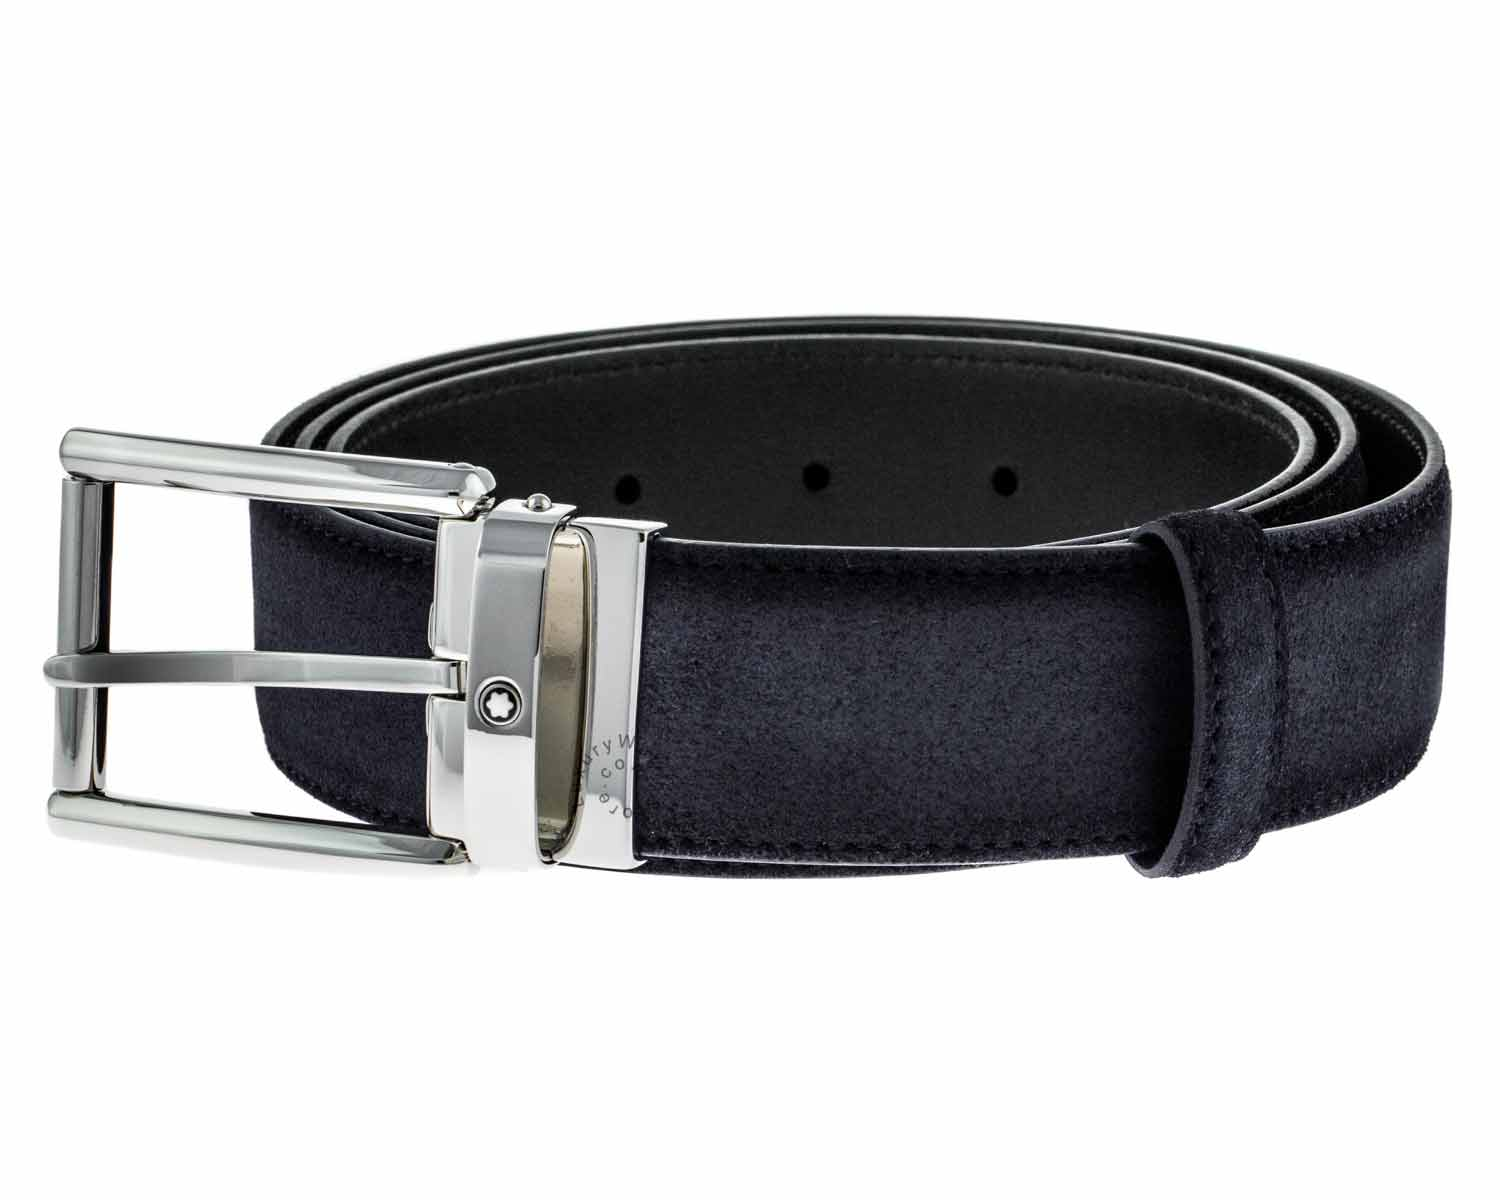 Montblanc Rectangular Shiny Palladium-Coated Pin Buckle Belt 116722